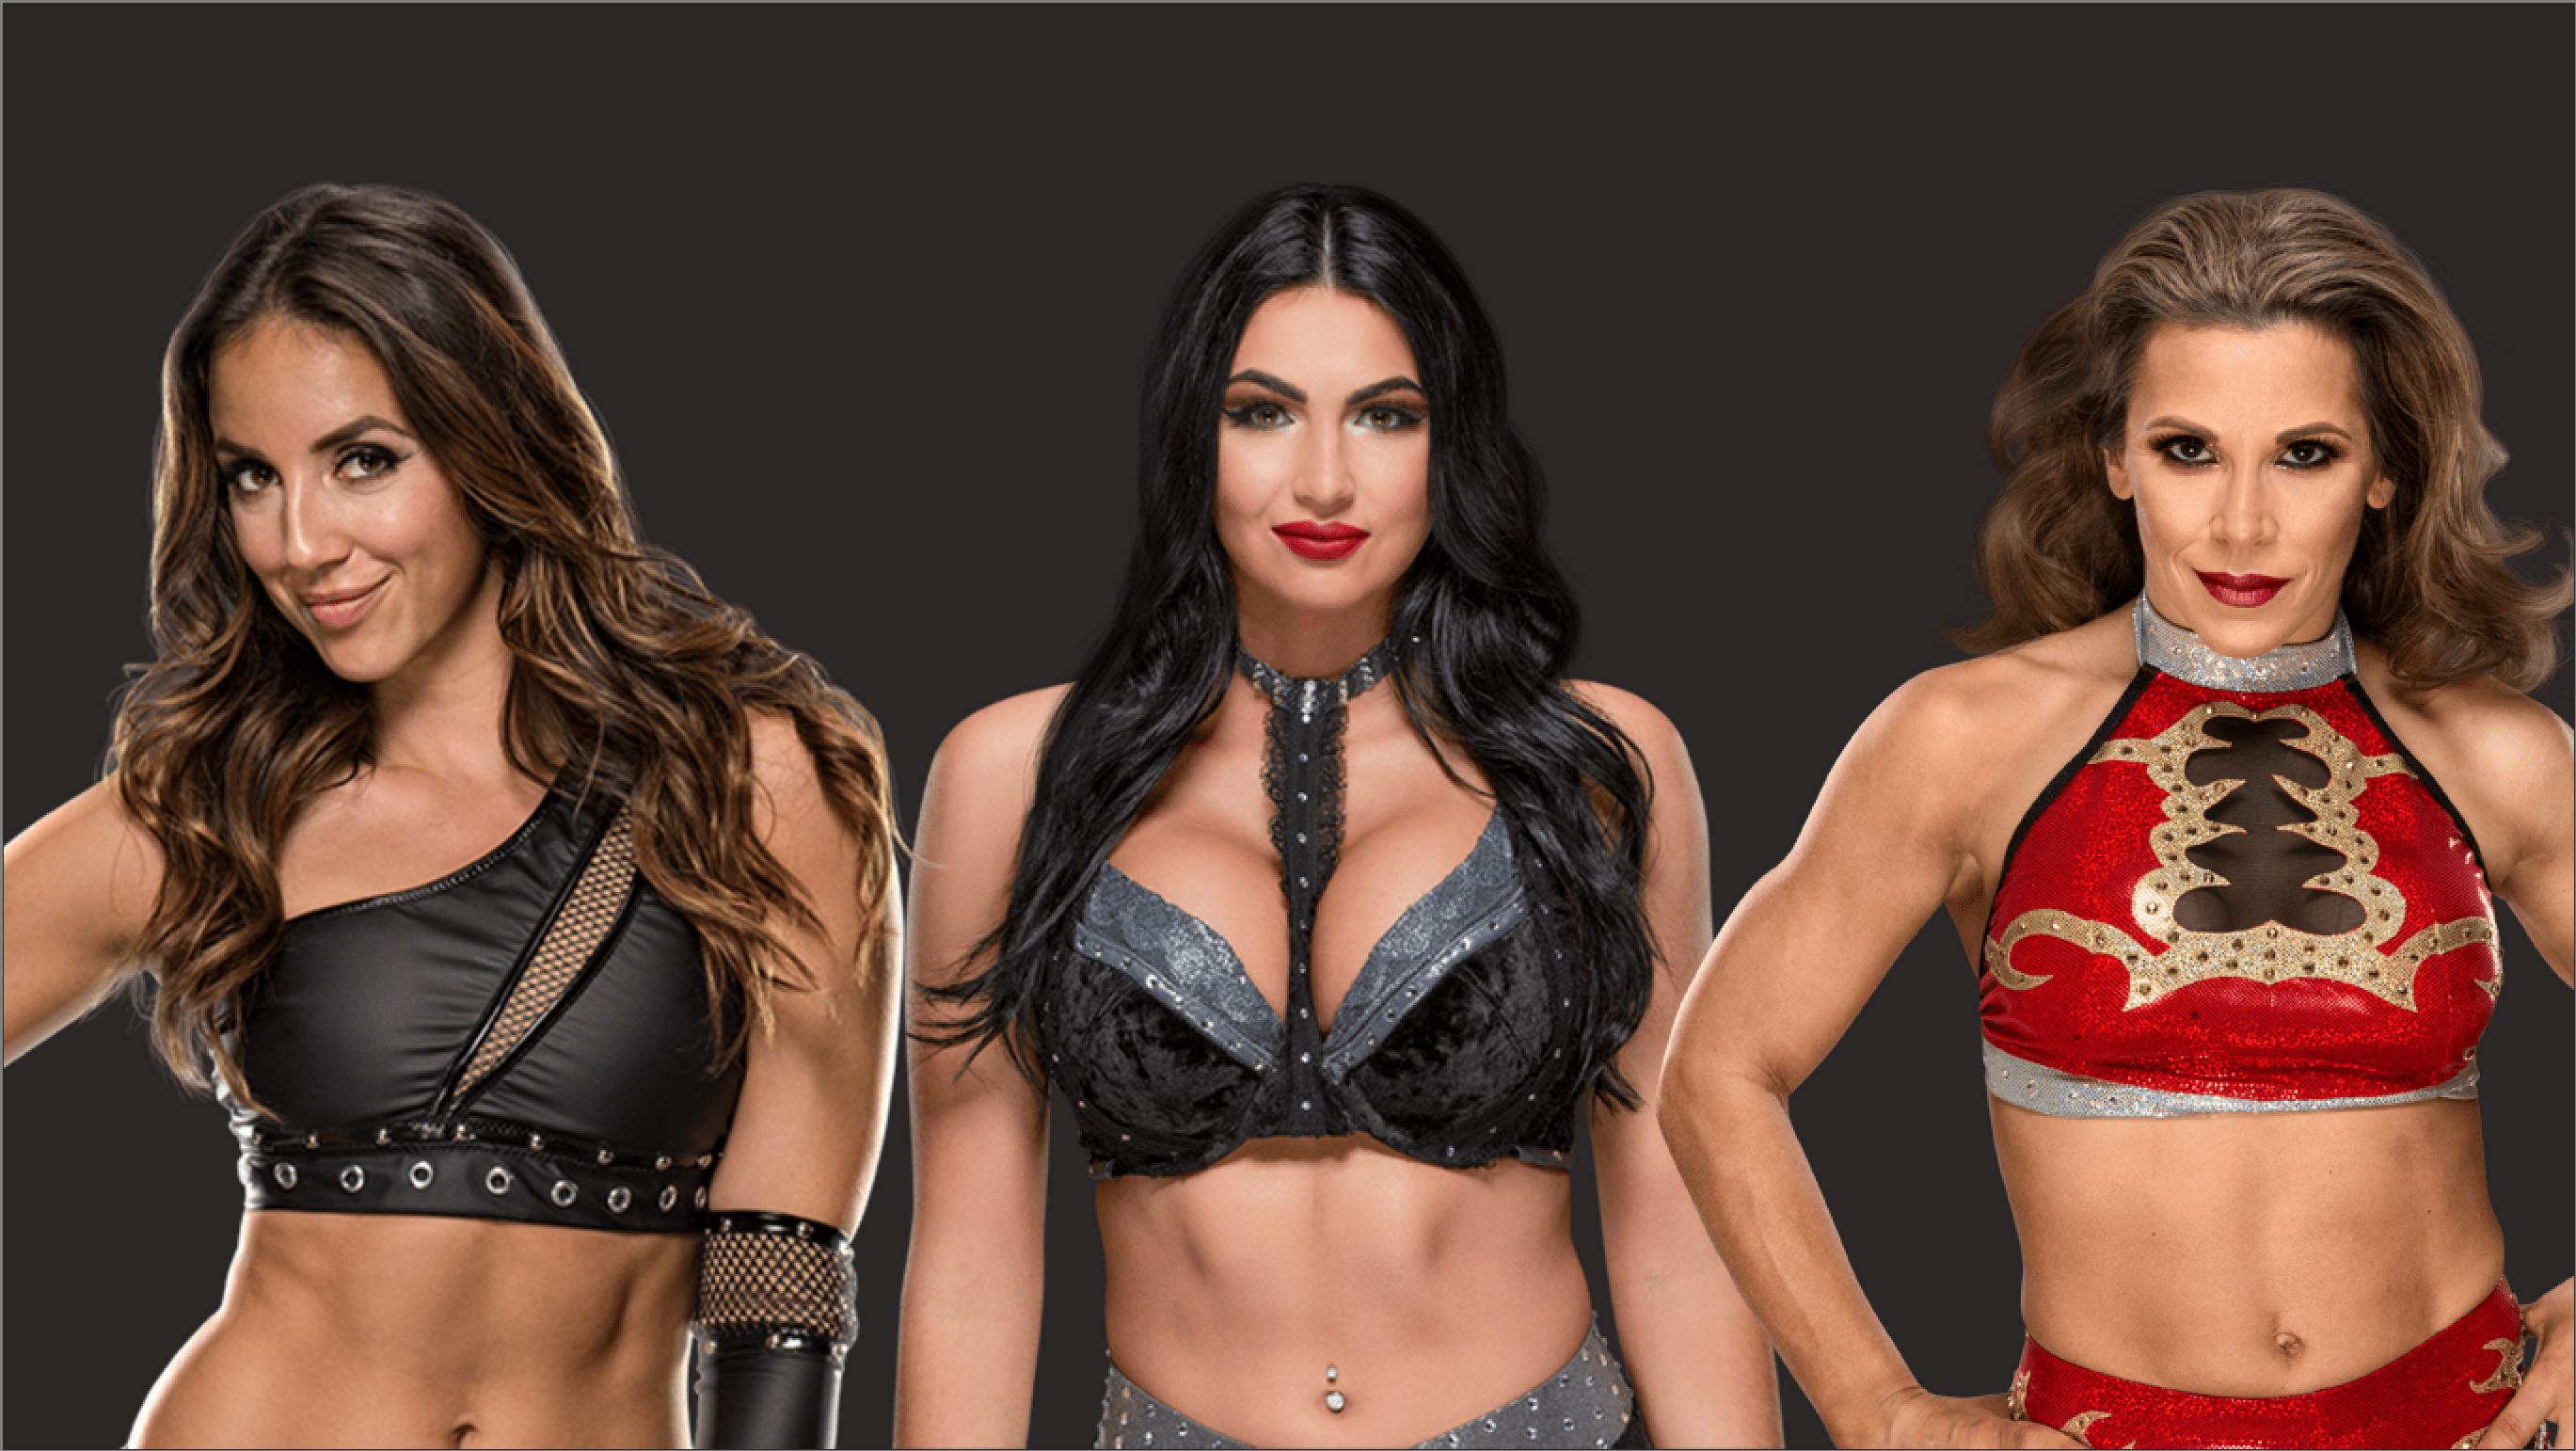 Billie Kay, Chelsea Green, and Mickie James released by WWE